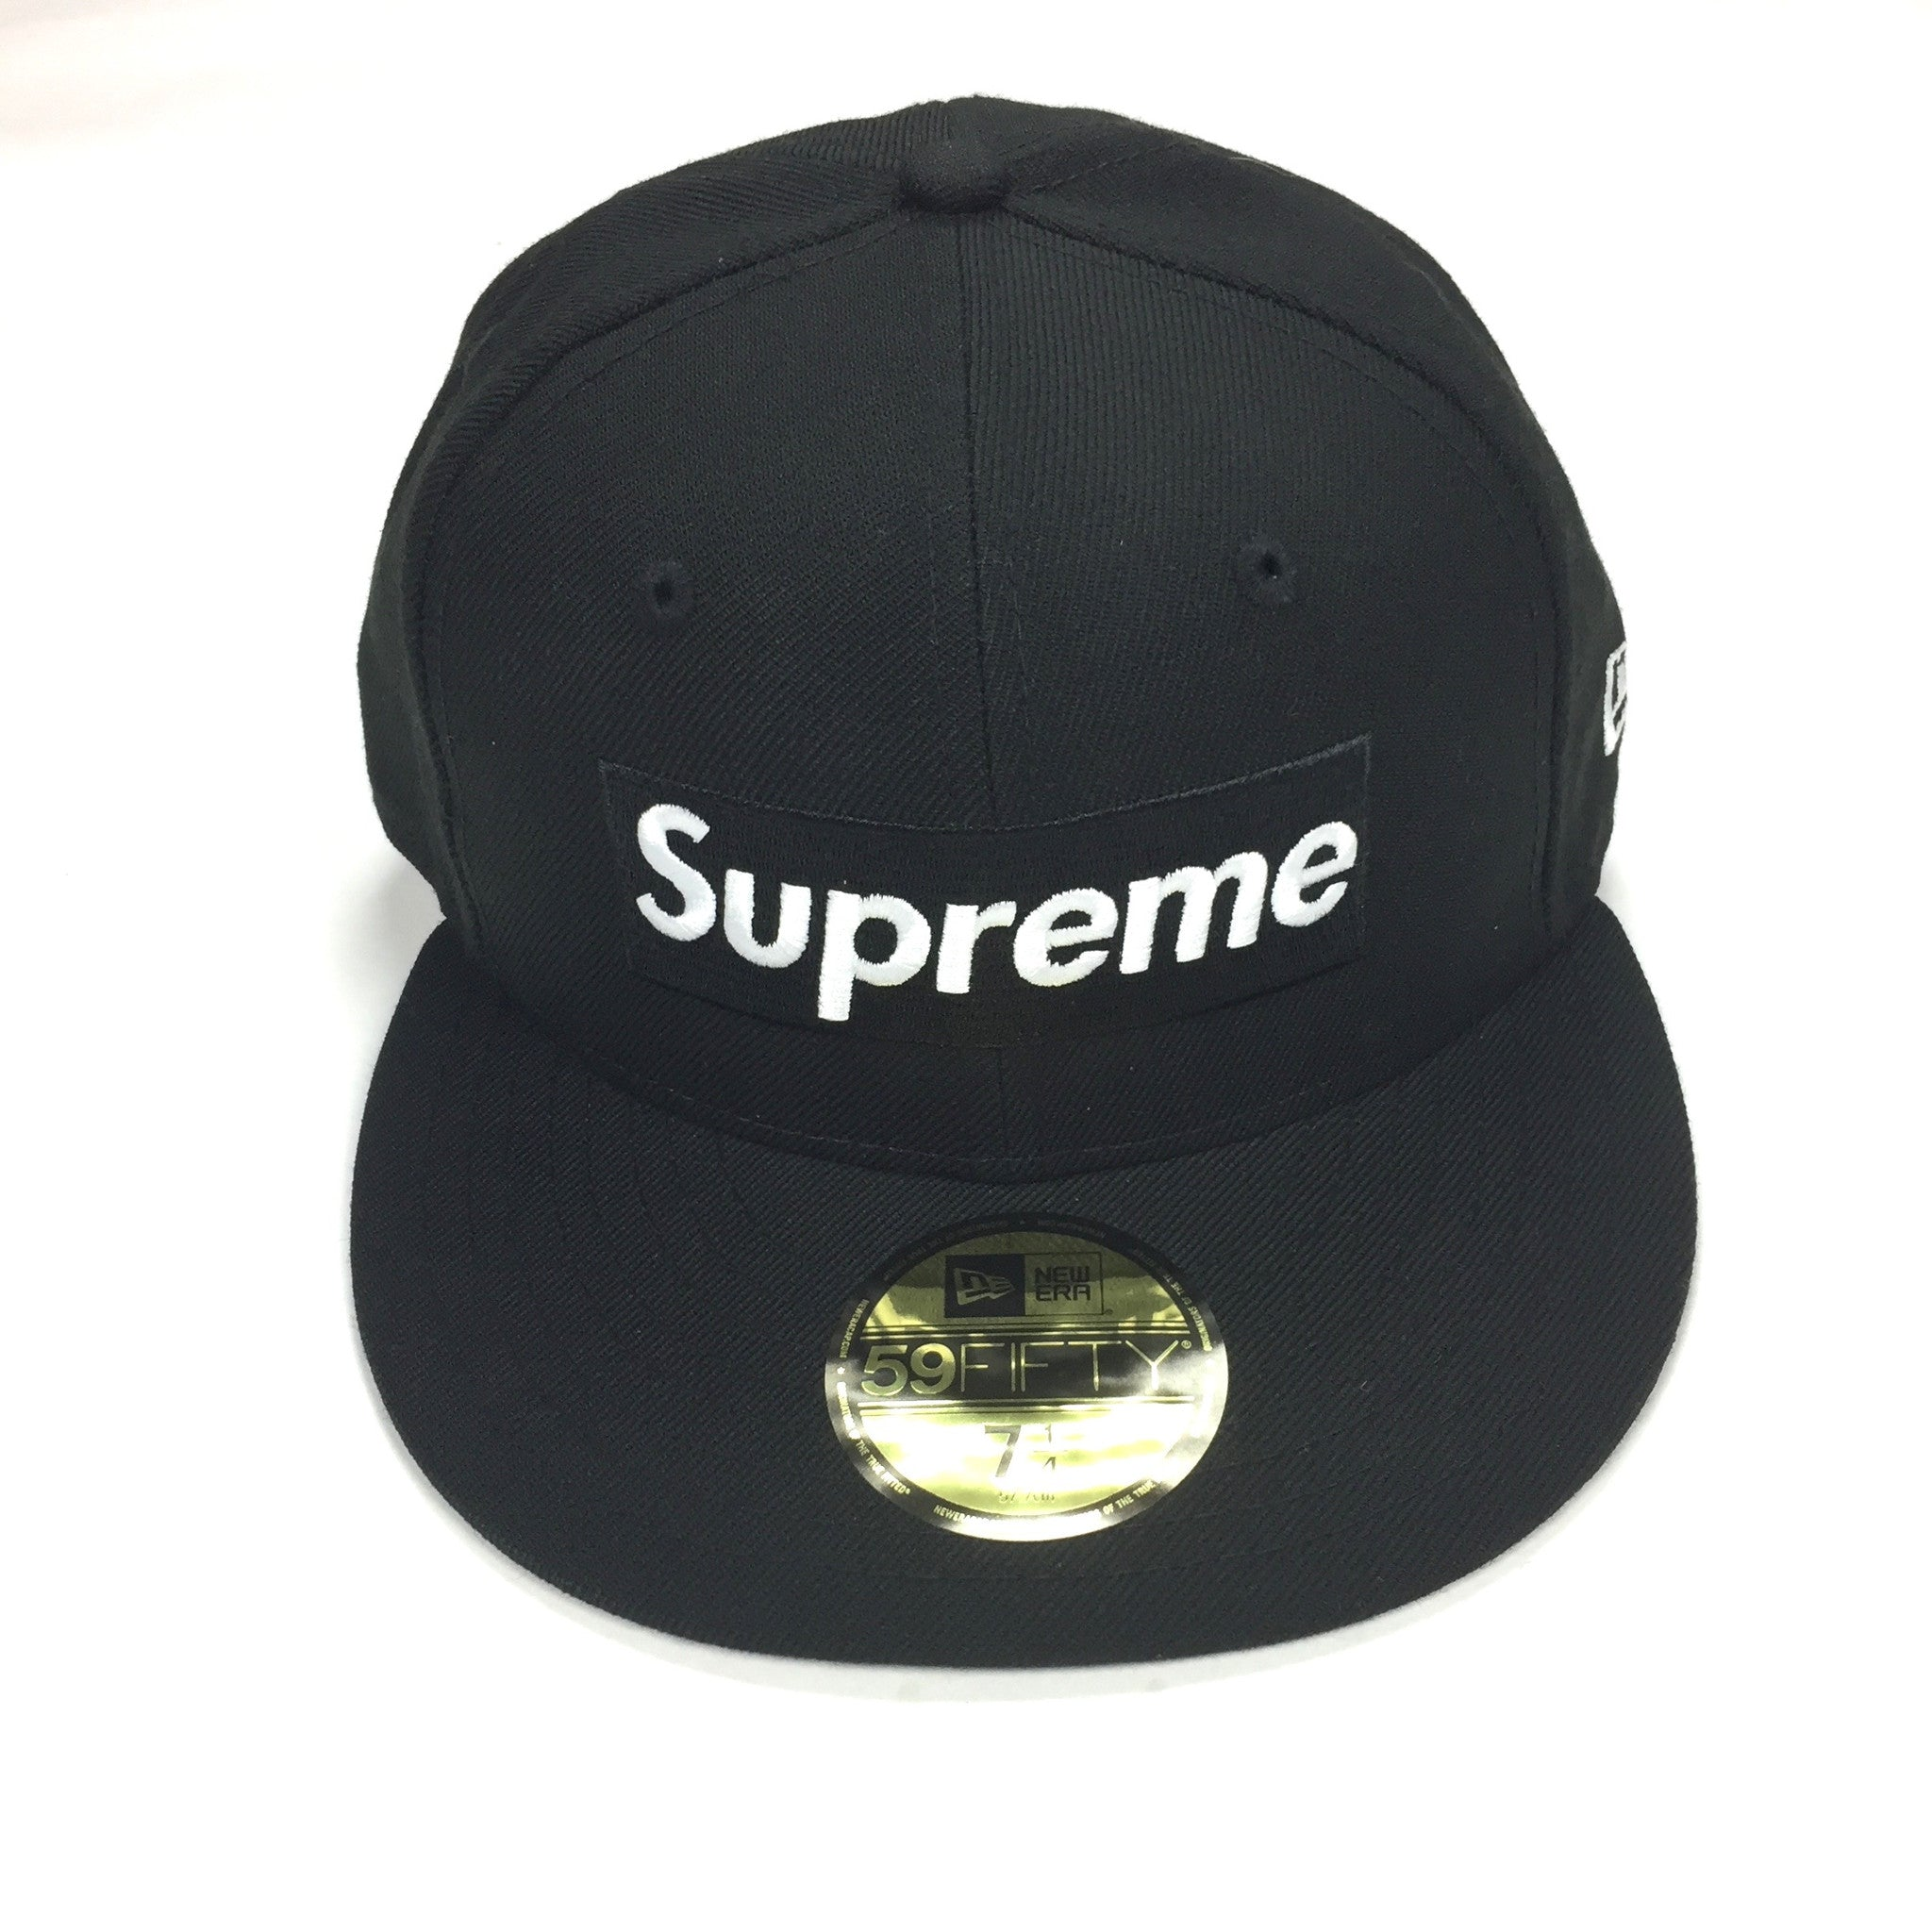 Supreme x New Era - SS17 Red Box Logo Piping Fitted 59FIFTY Hat ... a8aba92570ff